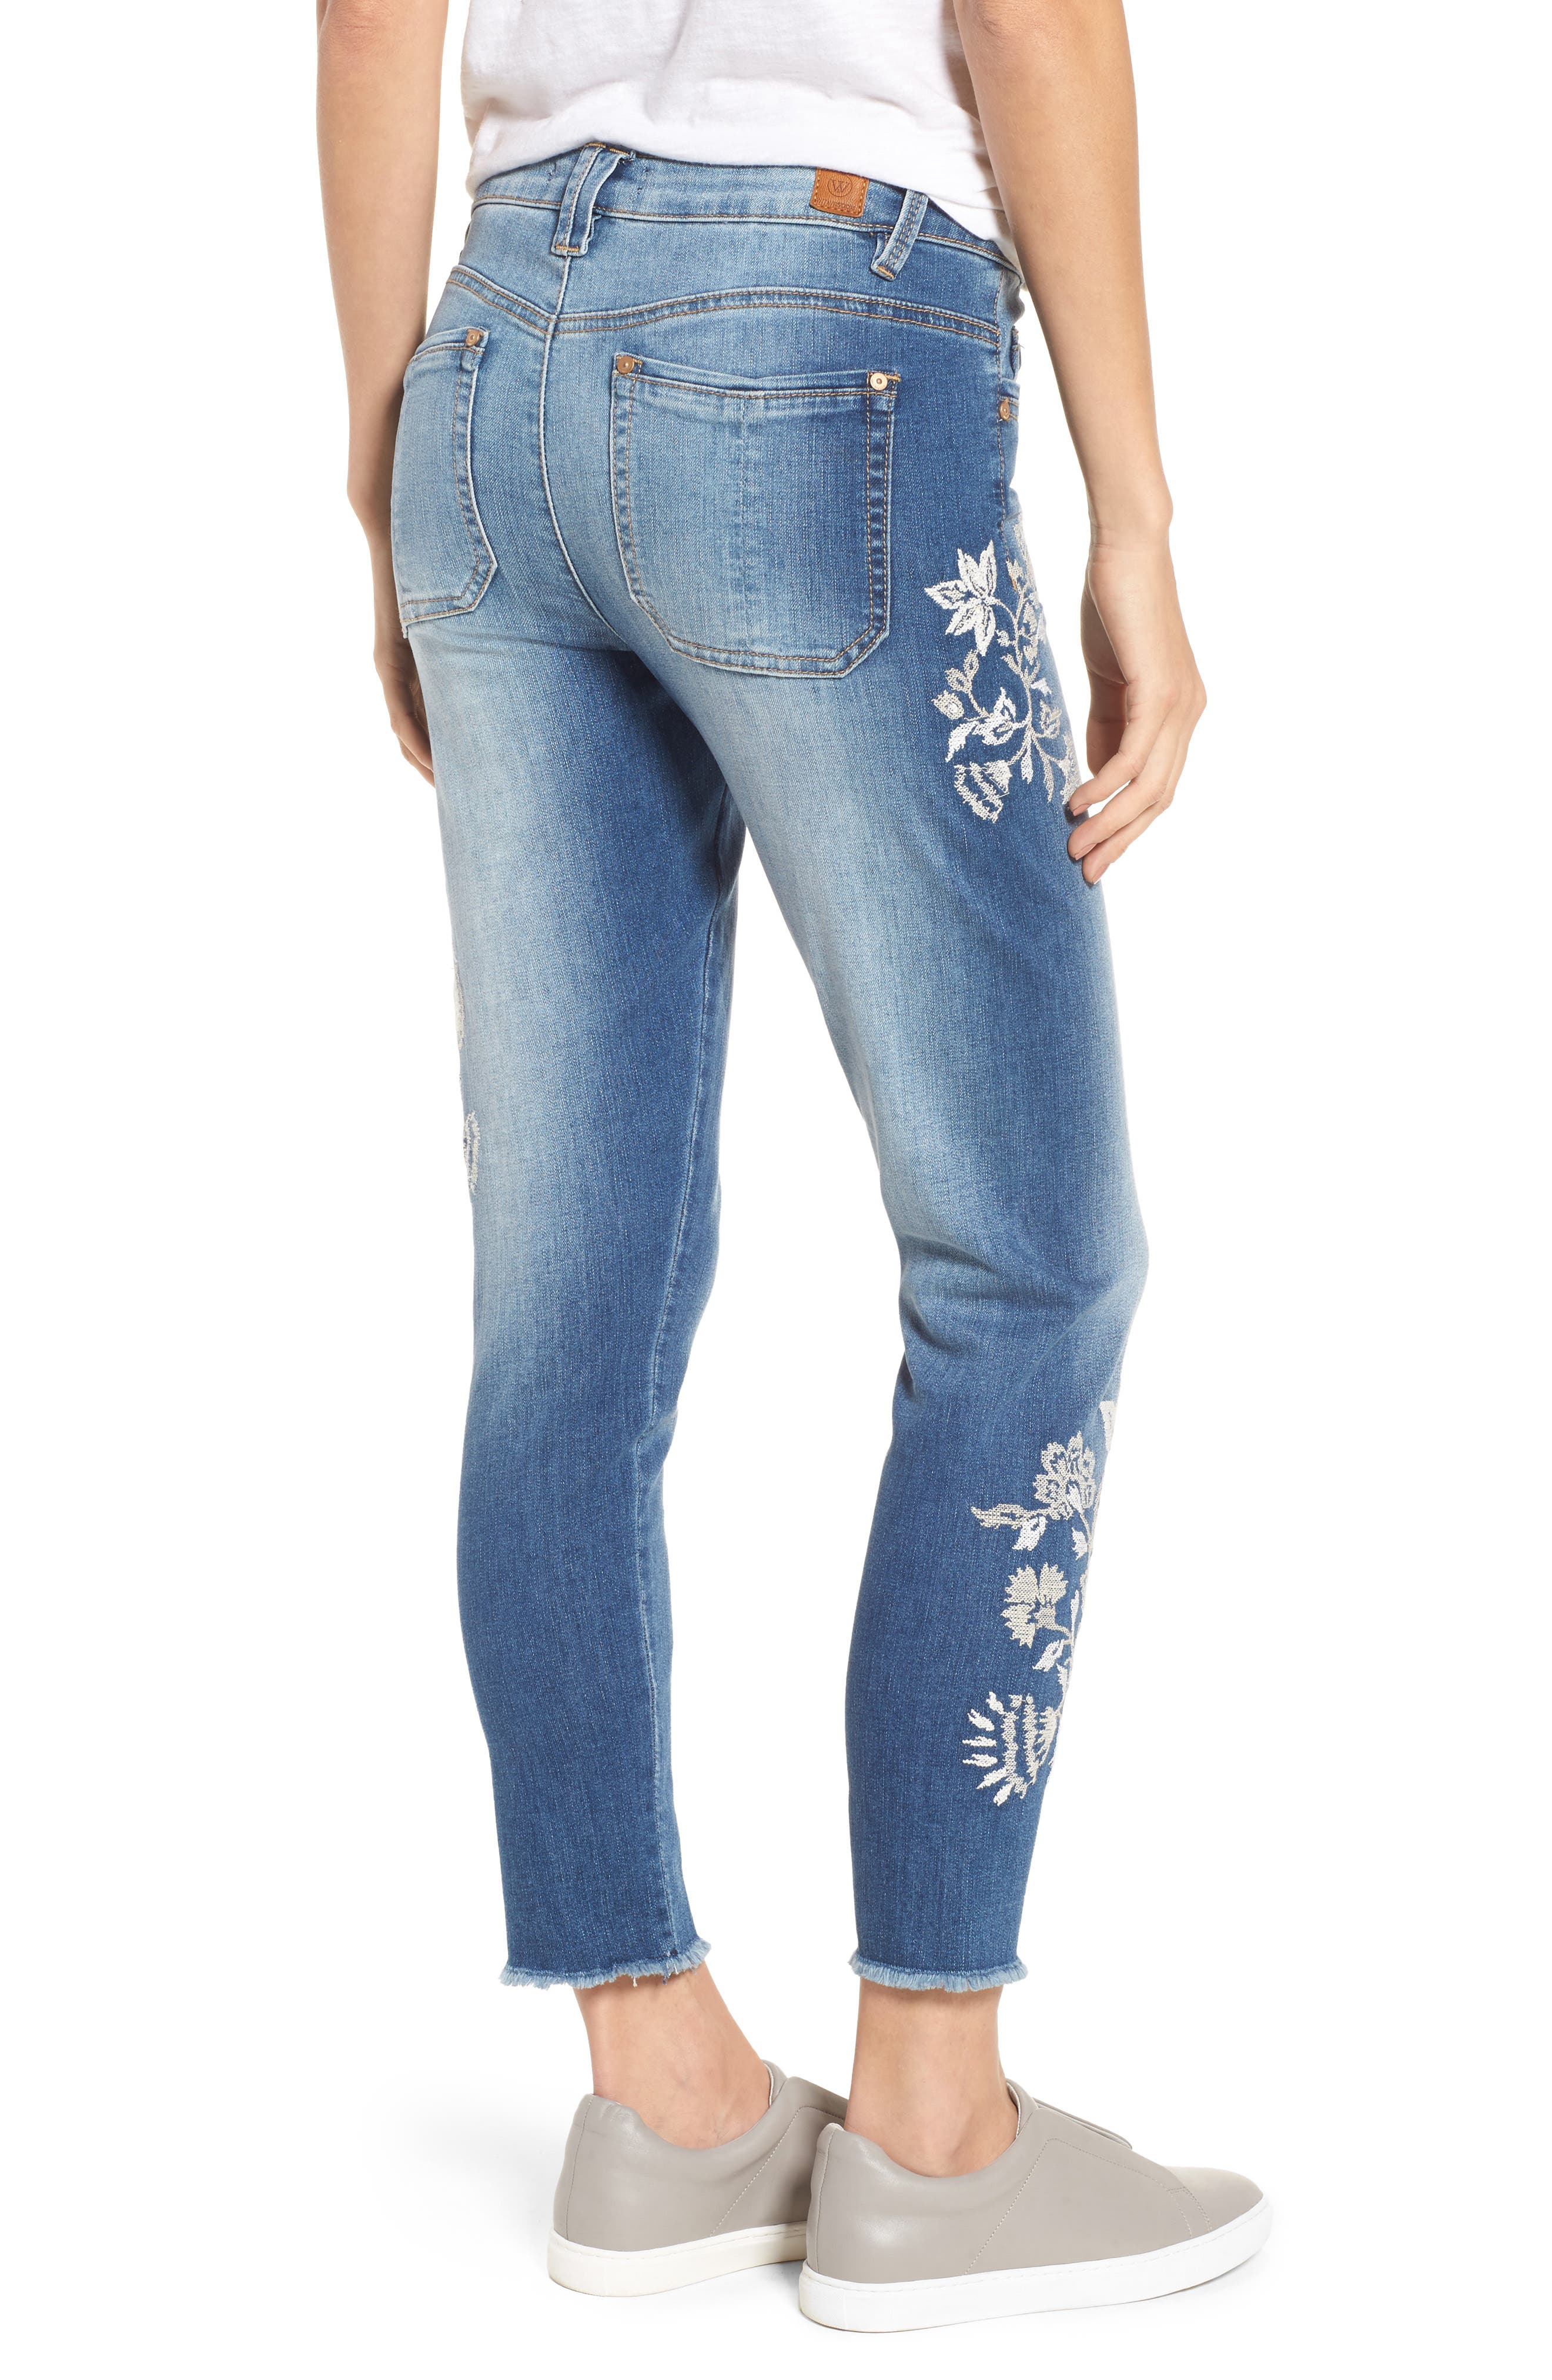 Alternate Image 3  - Wit & Wisdom Embroidered Frayed Hem Ankle Jeans (Nordstrom Exclusive) (Regular & Petite)